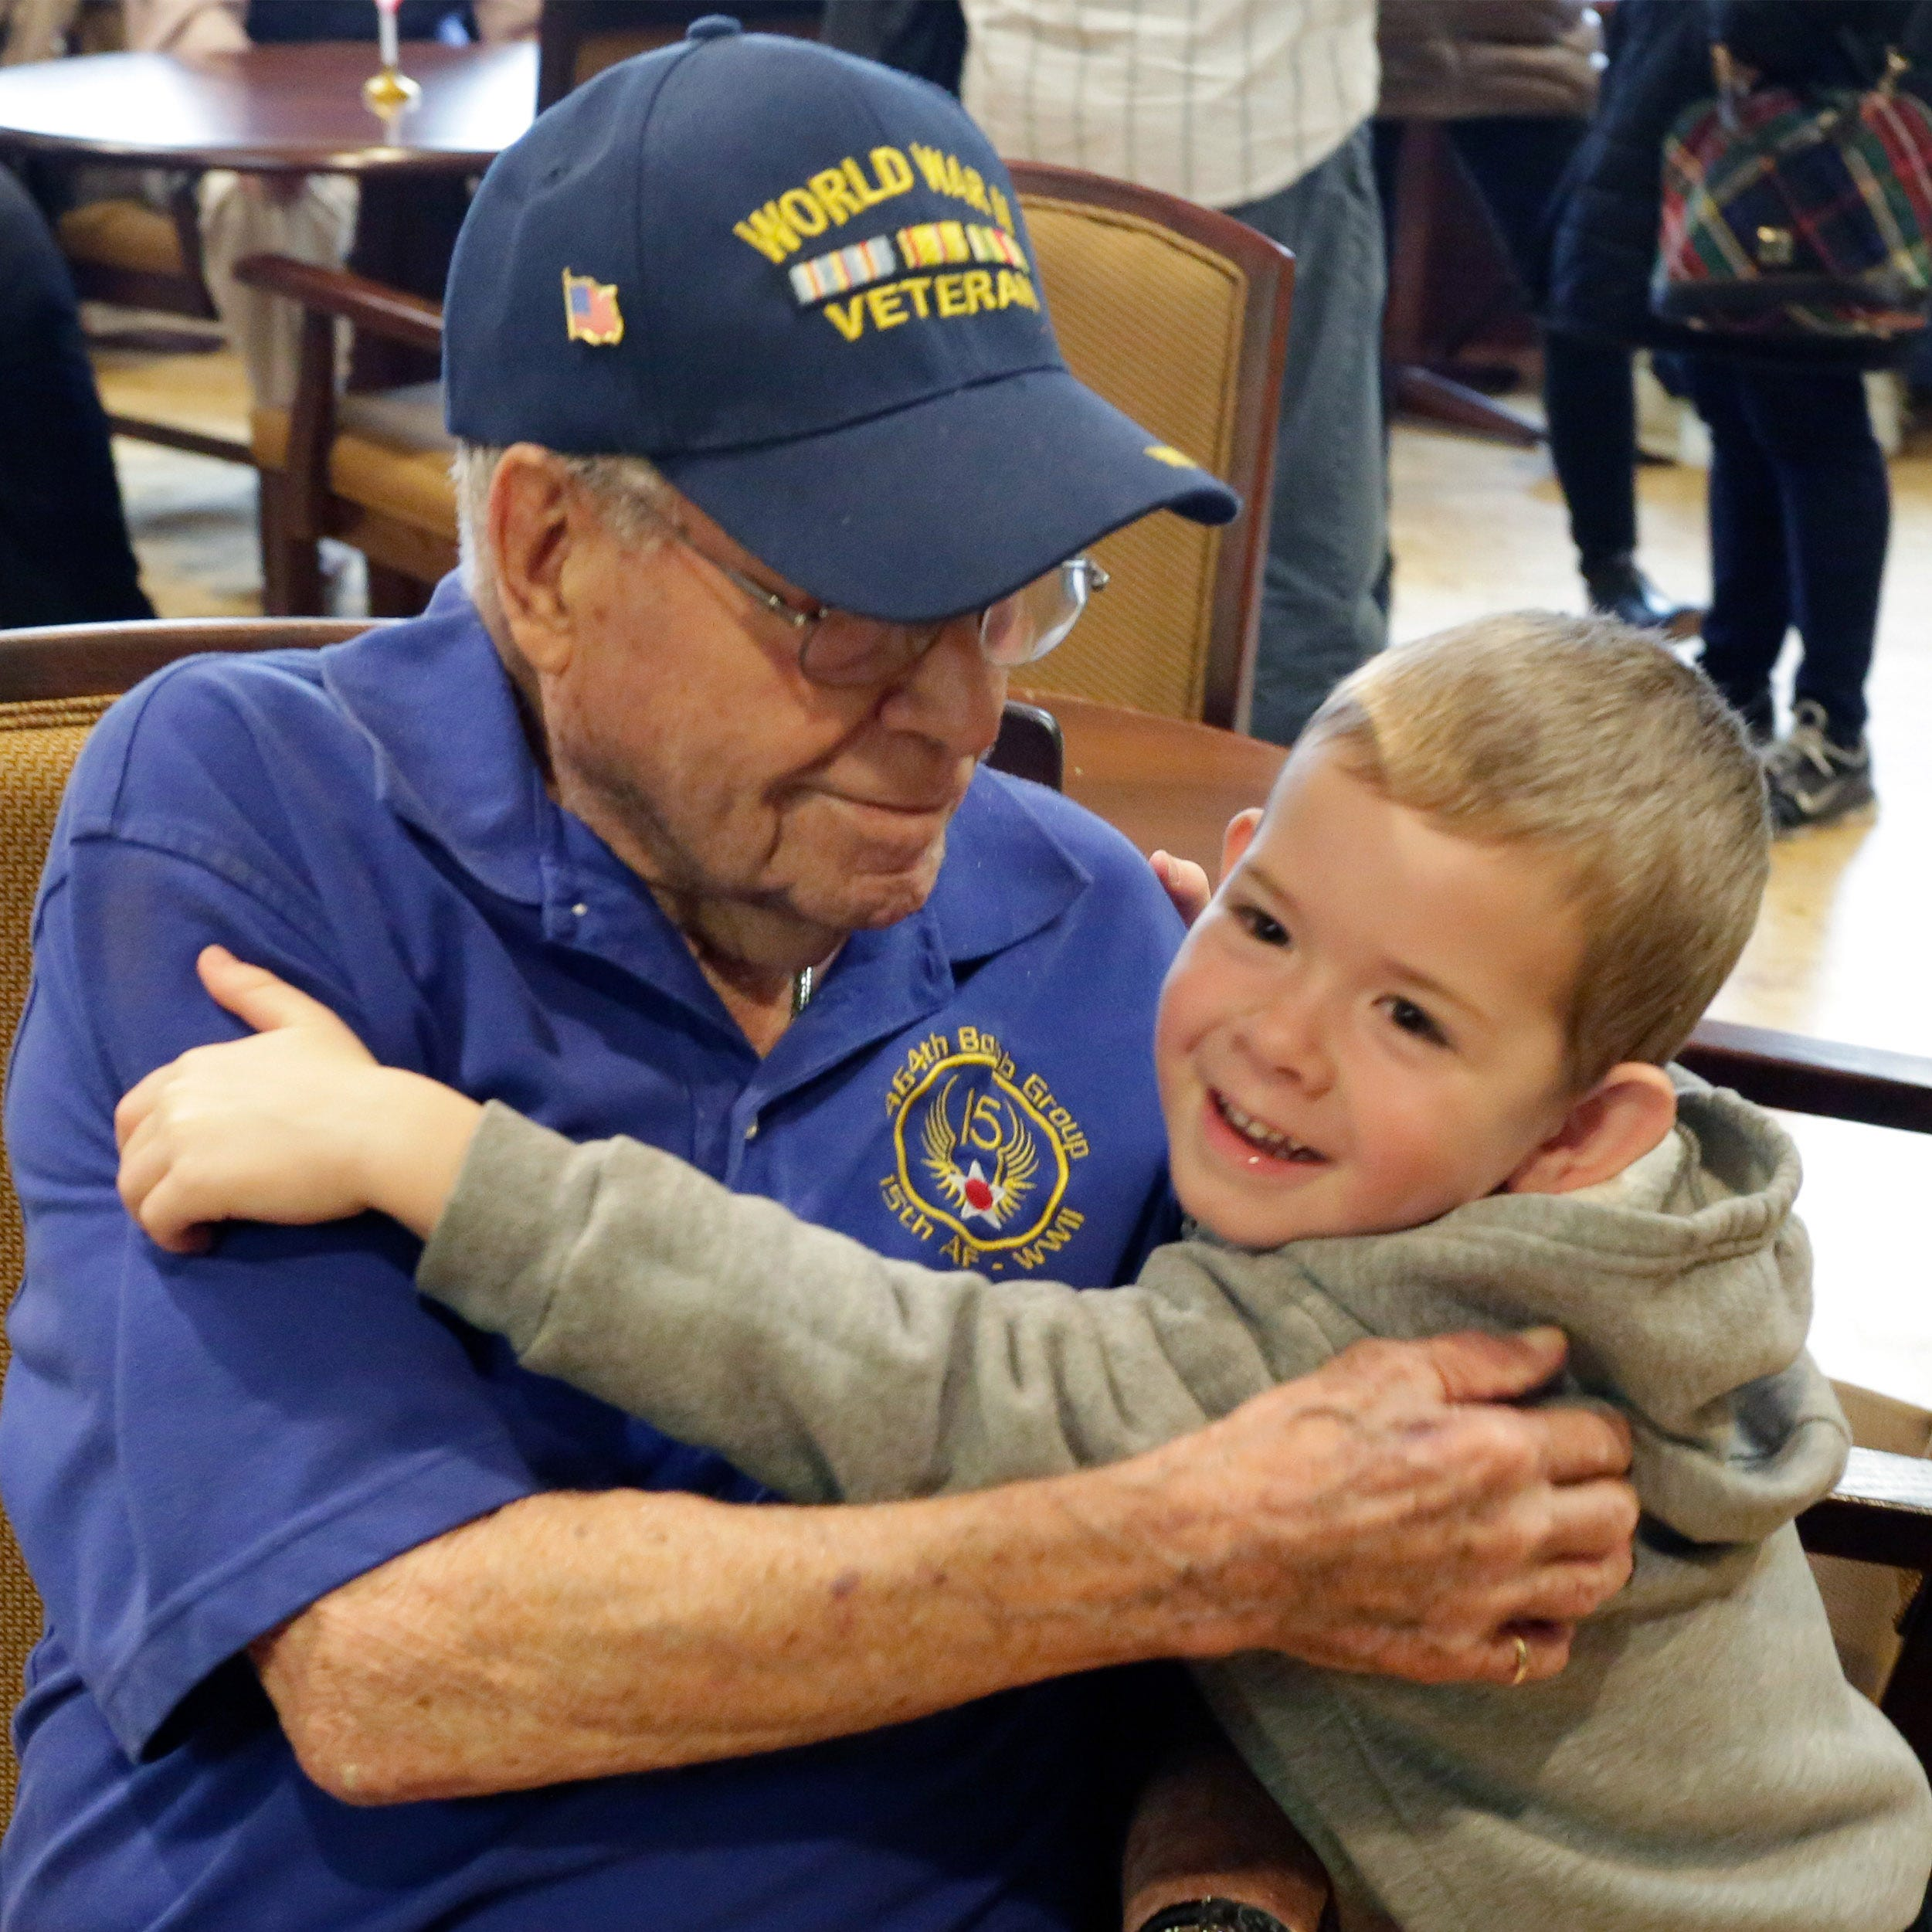 World War II veteran celebrates 100th birthday, shares his secret to long life